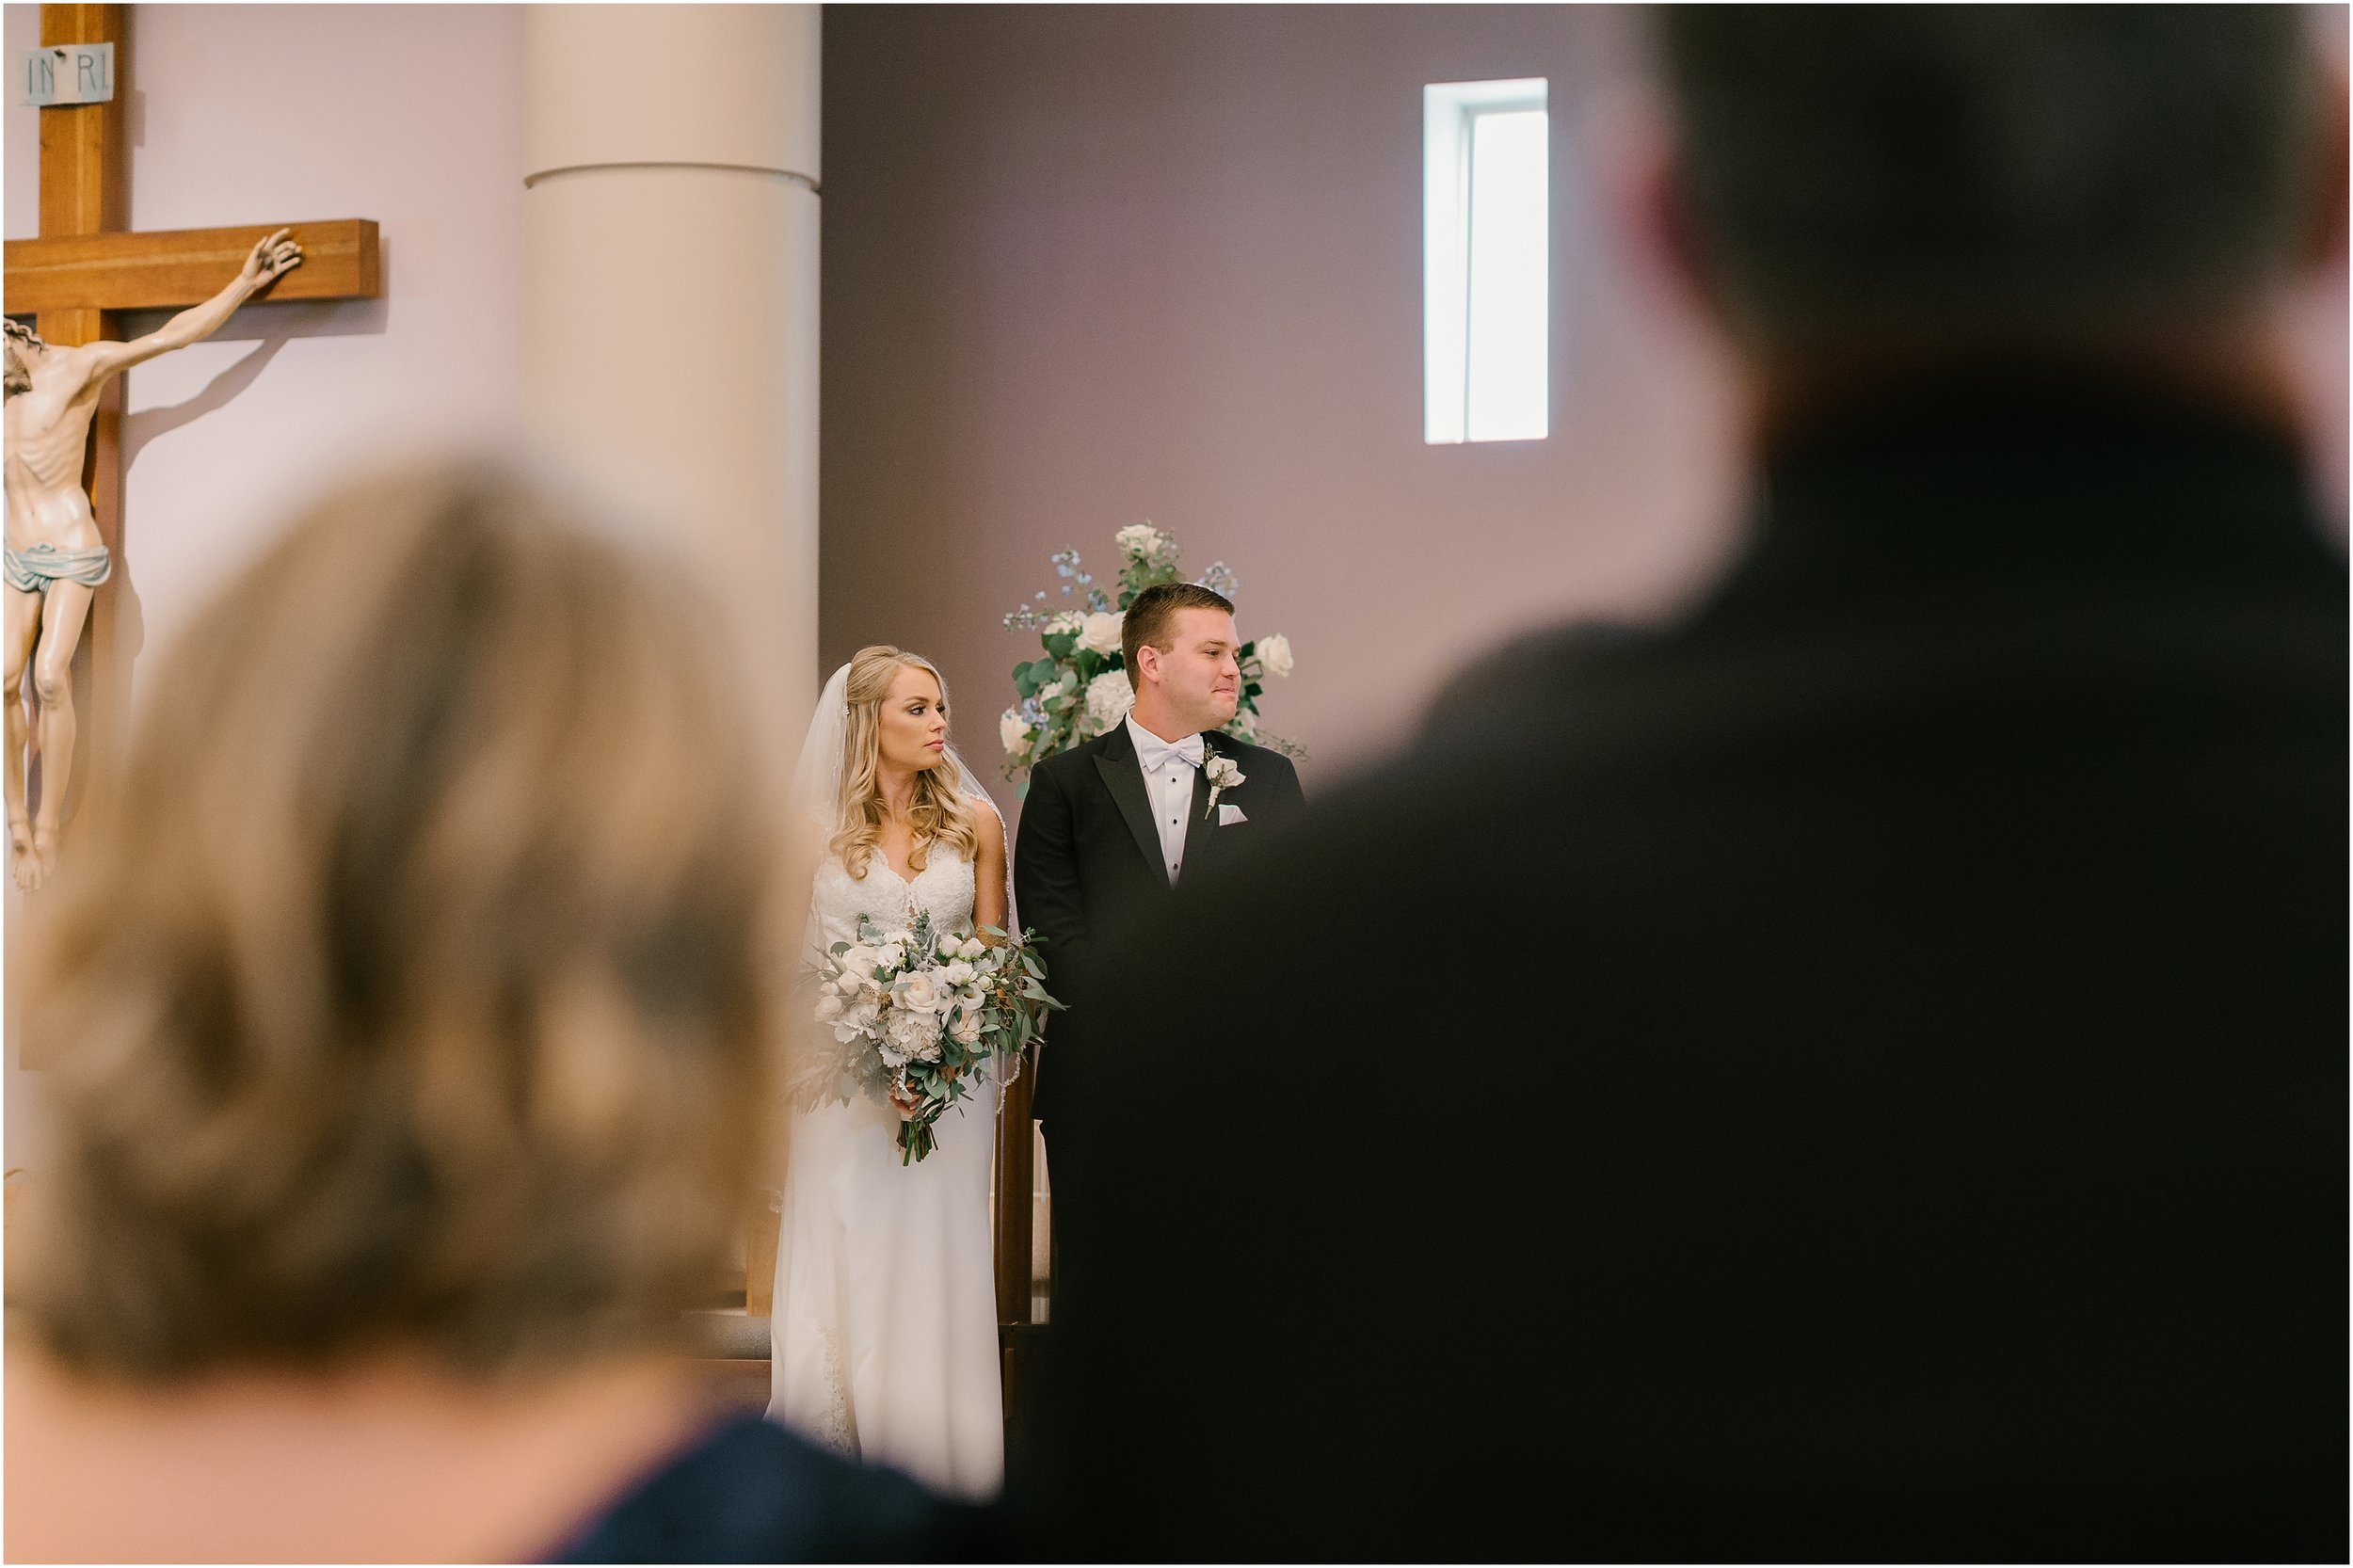 Rebecca_Shehorn_Photography_Indianapolis_Wedding_Photographer_8938.jpg